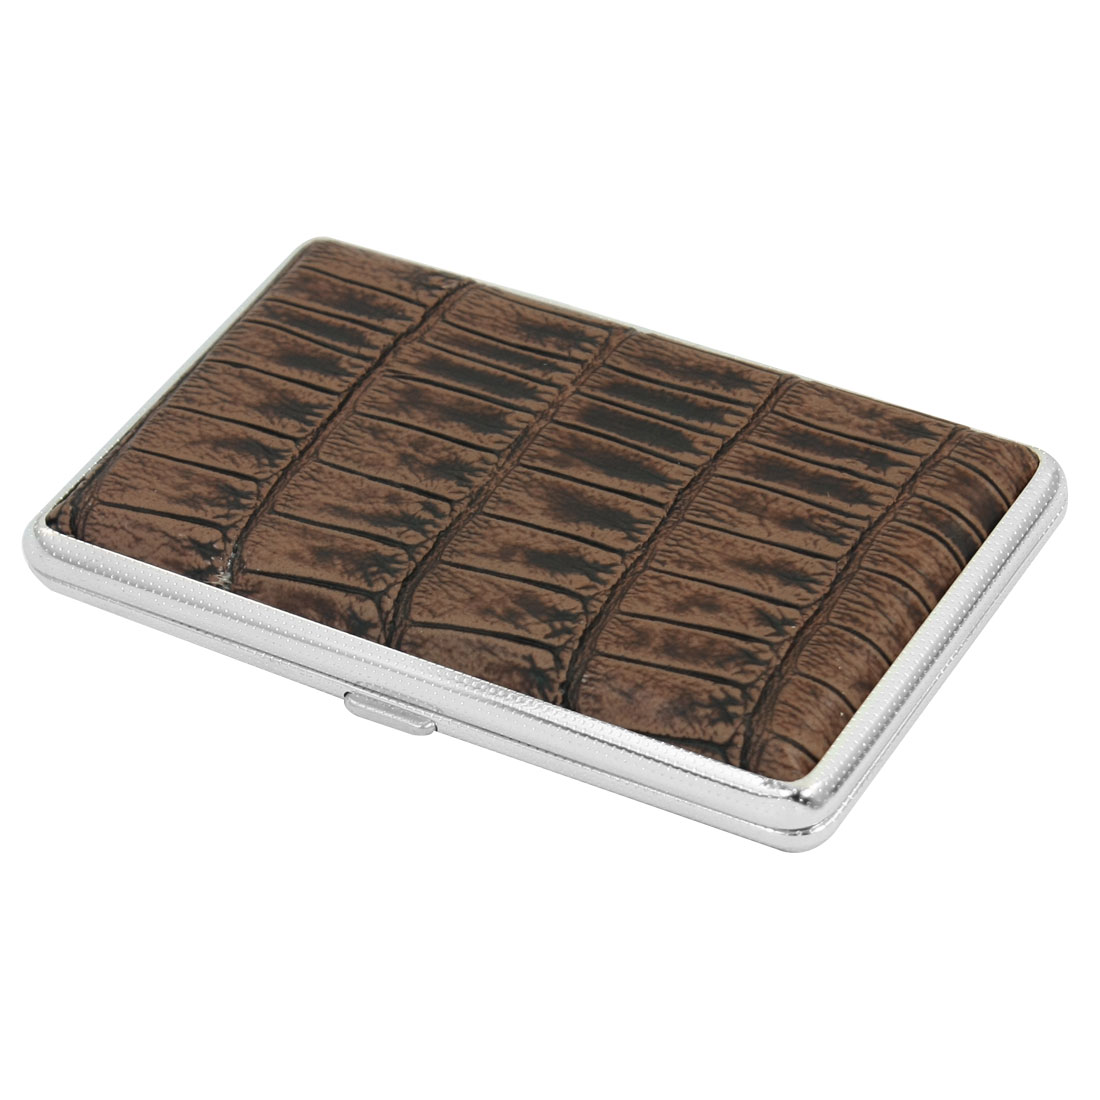 Chocolate Color Rectangular Crocodile Print Faux Leather Coated Two Sides Hinge Closure Metal Case Box Holder Container for 14pcs Cigarette